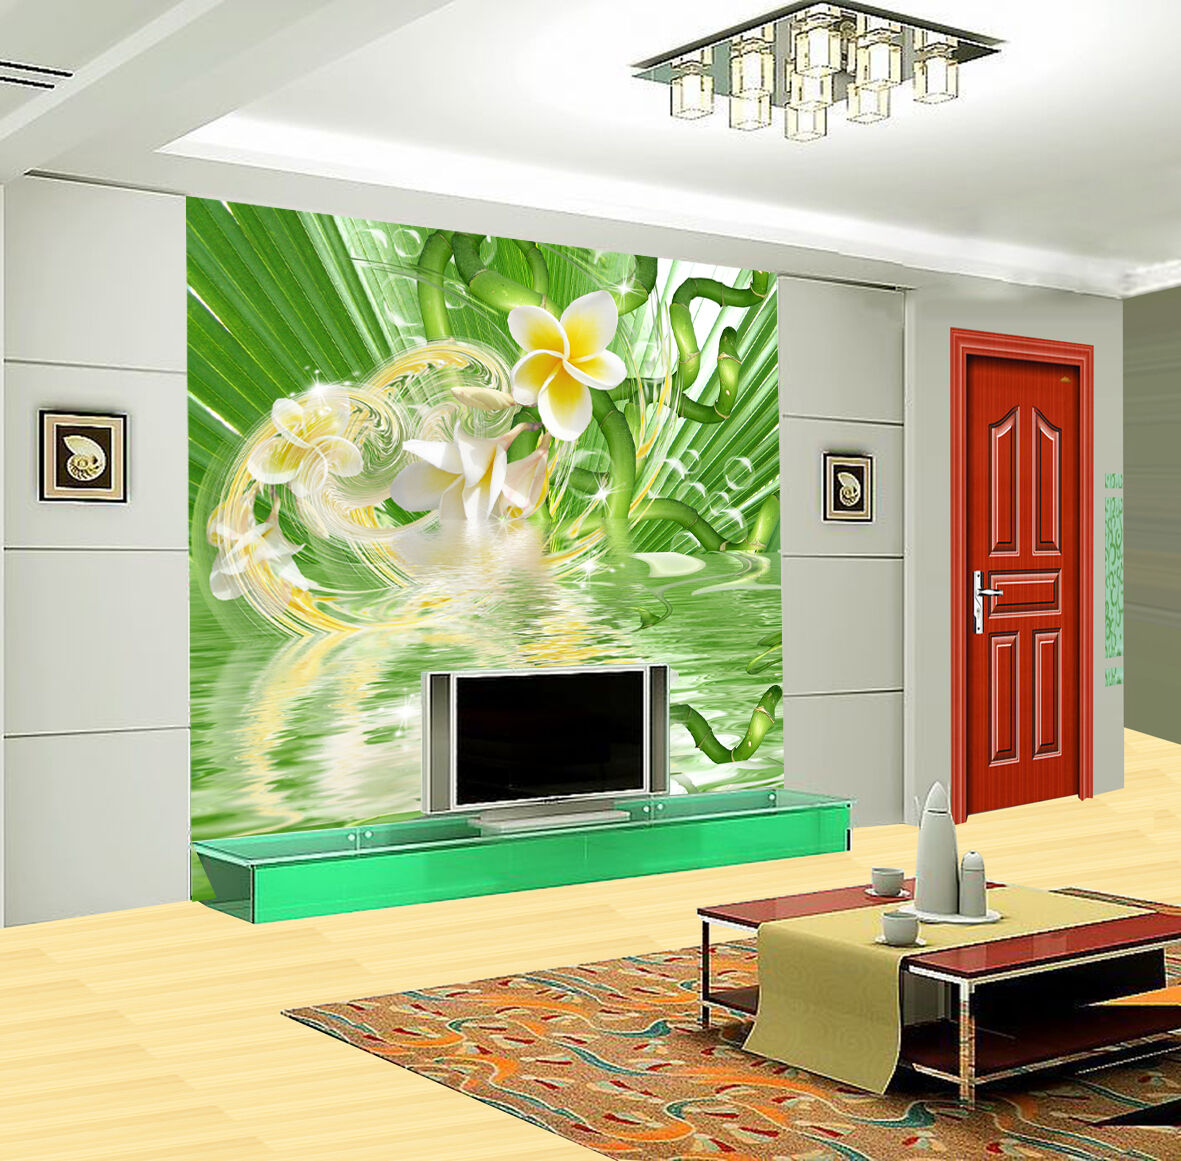 3D Greenery Flowers  5 WallPaper Murals Wall Print Decal Wall Deco AJ WALLPAPER